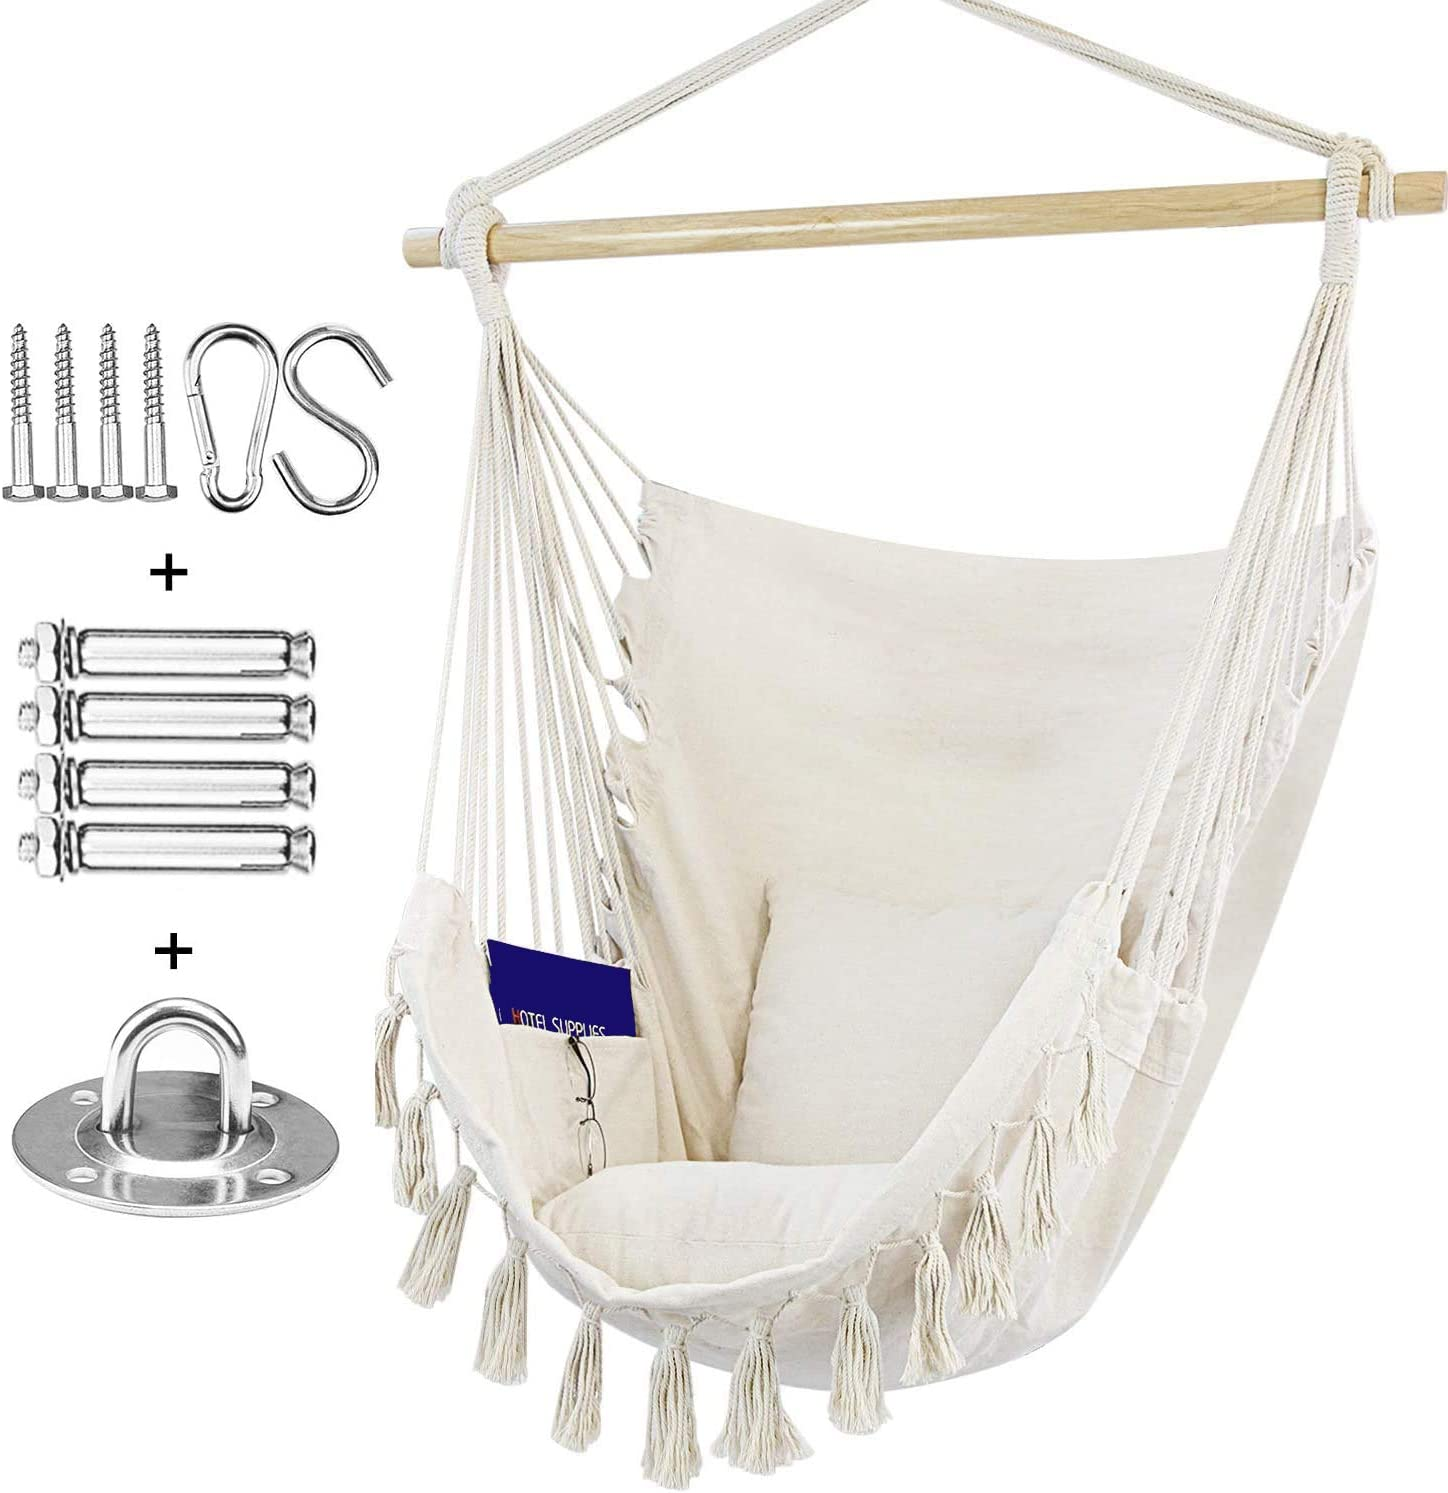 Rebel Life Hammock Hanging Rope Swing Indoor Macrame Chair with Max Capacity of 330LBS with 2 Cushions and Big Side Pocket for Comfort with Complete Hardware Set for Durability Beige